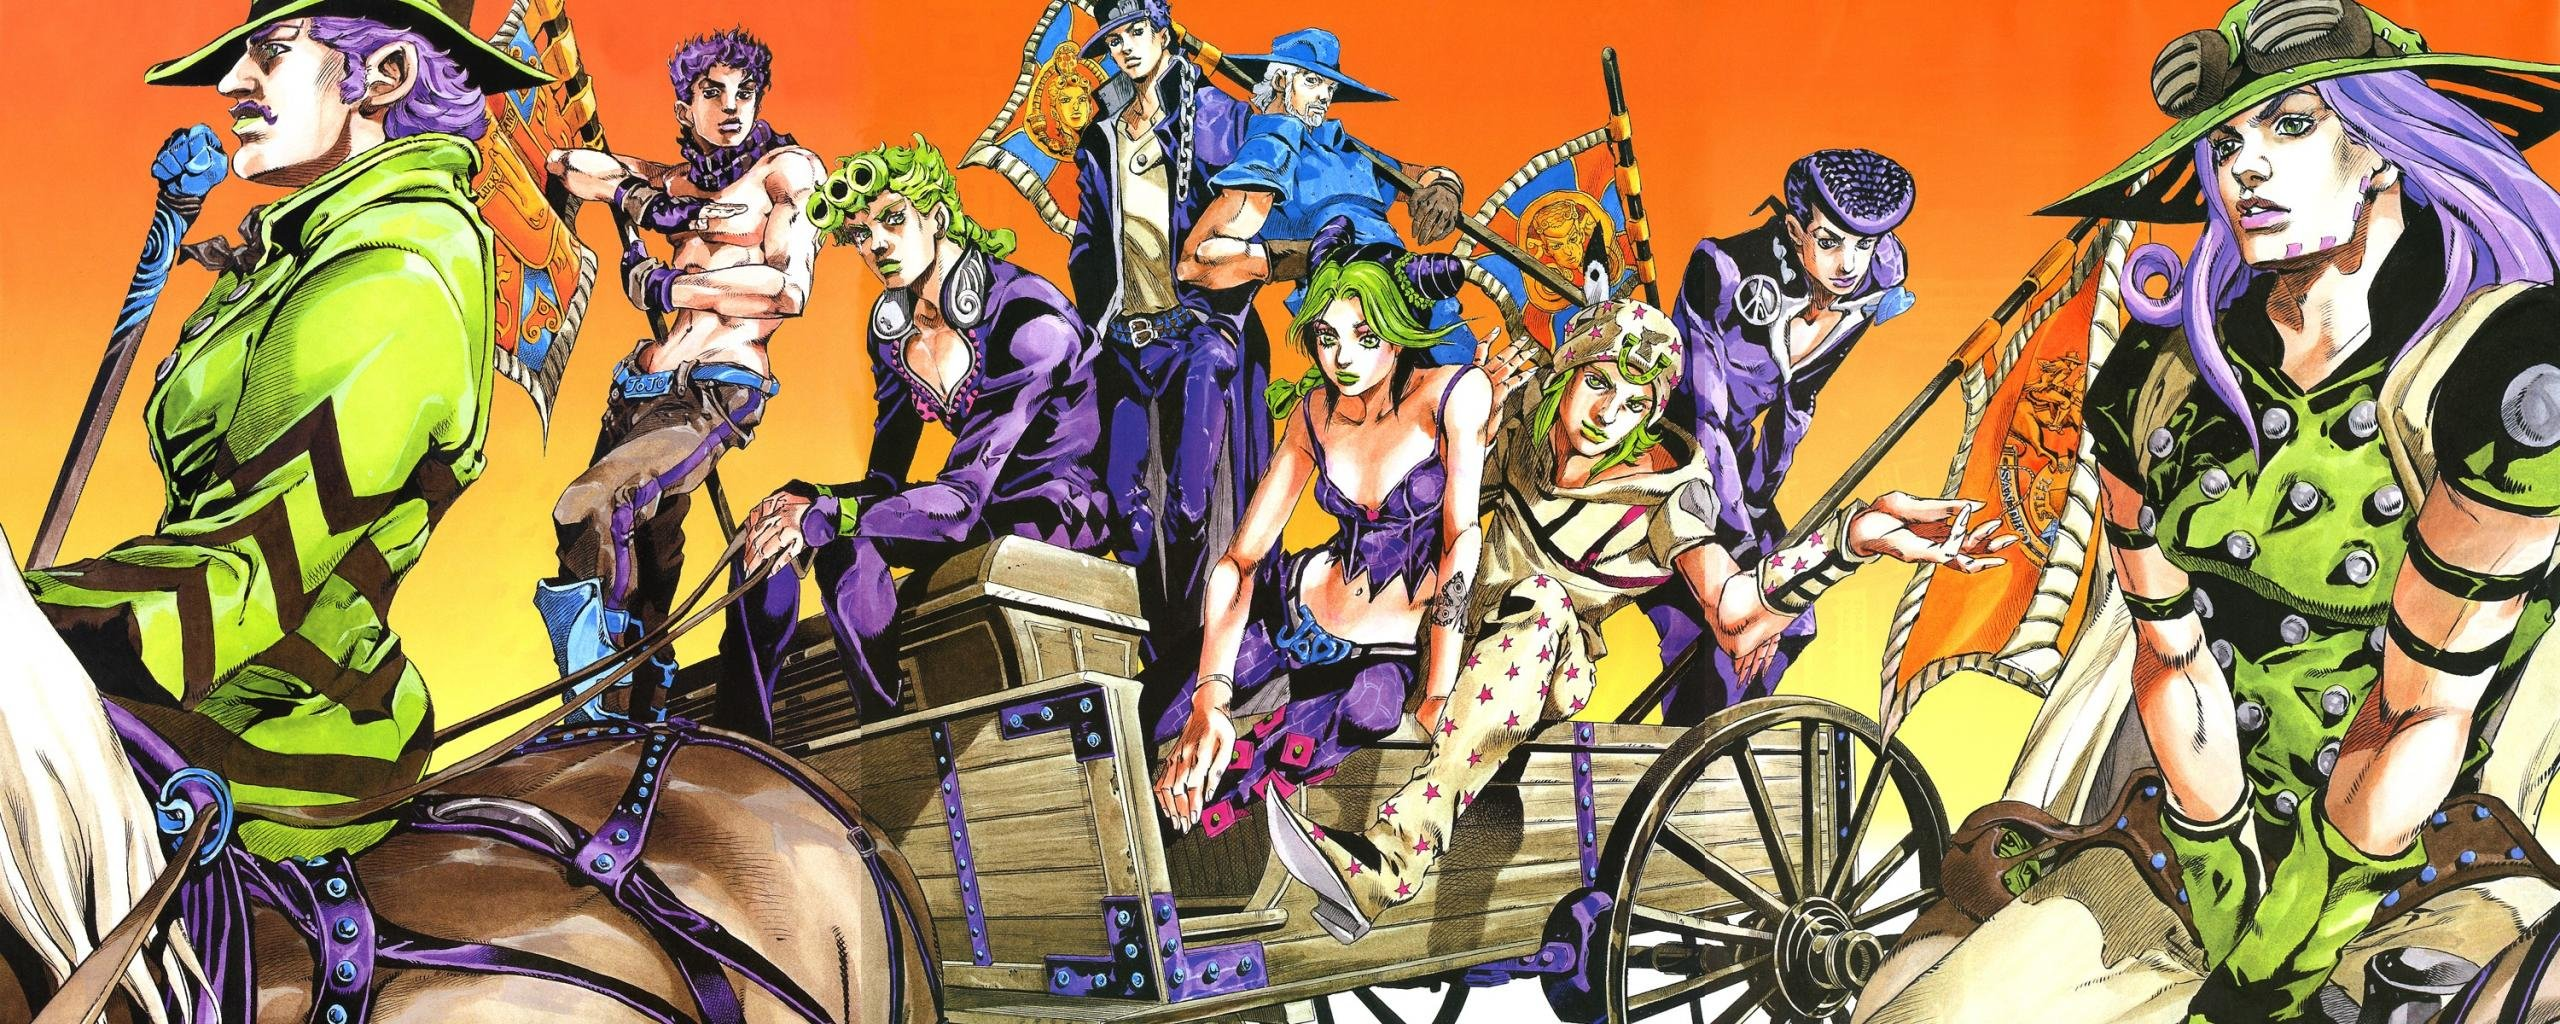 Download dual screen 2560x1024 Jojo's Bizarre Adventure computer background ID:297296 for free